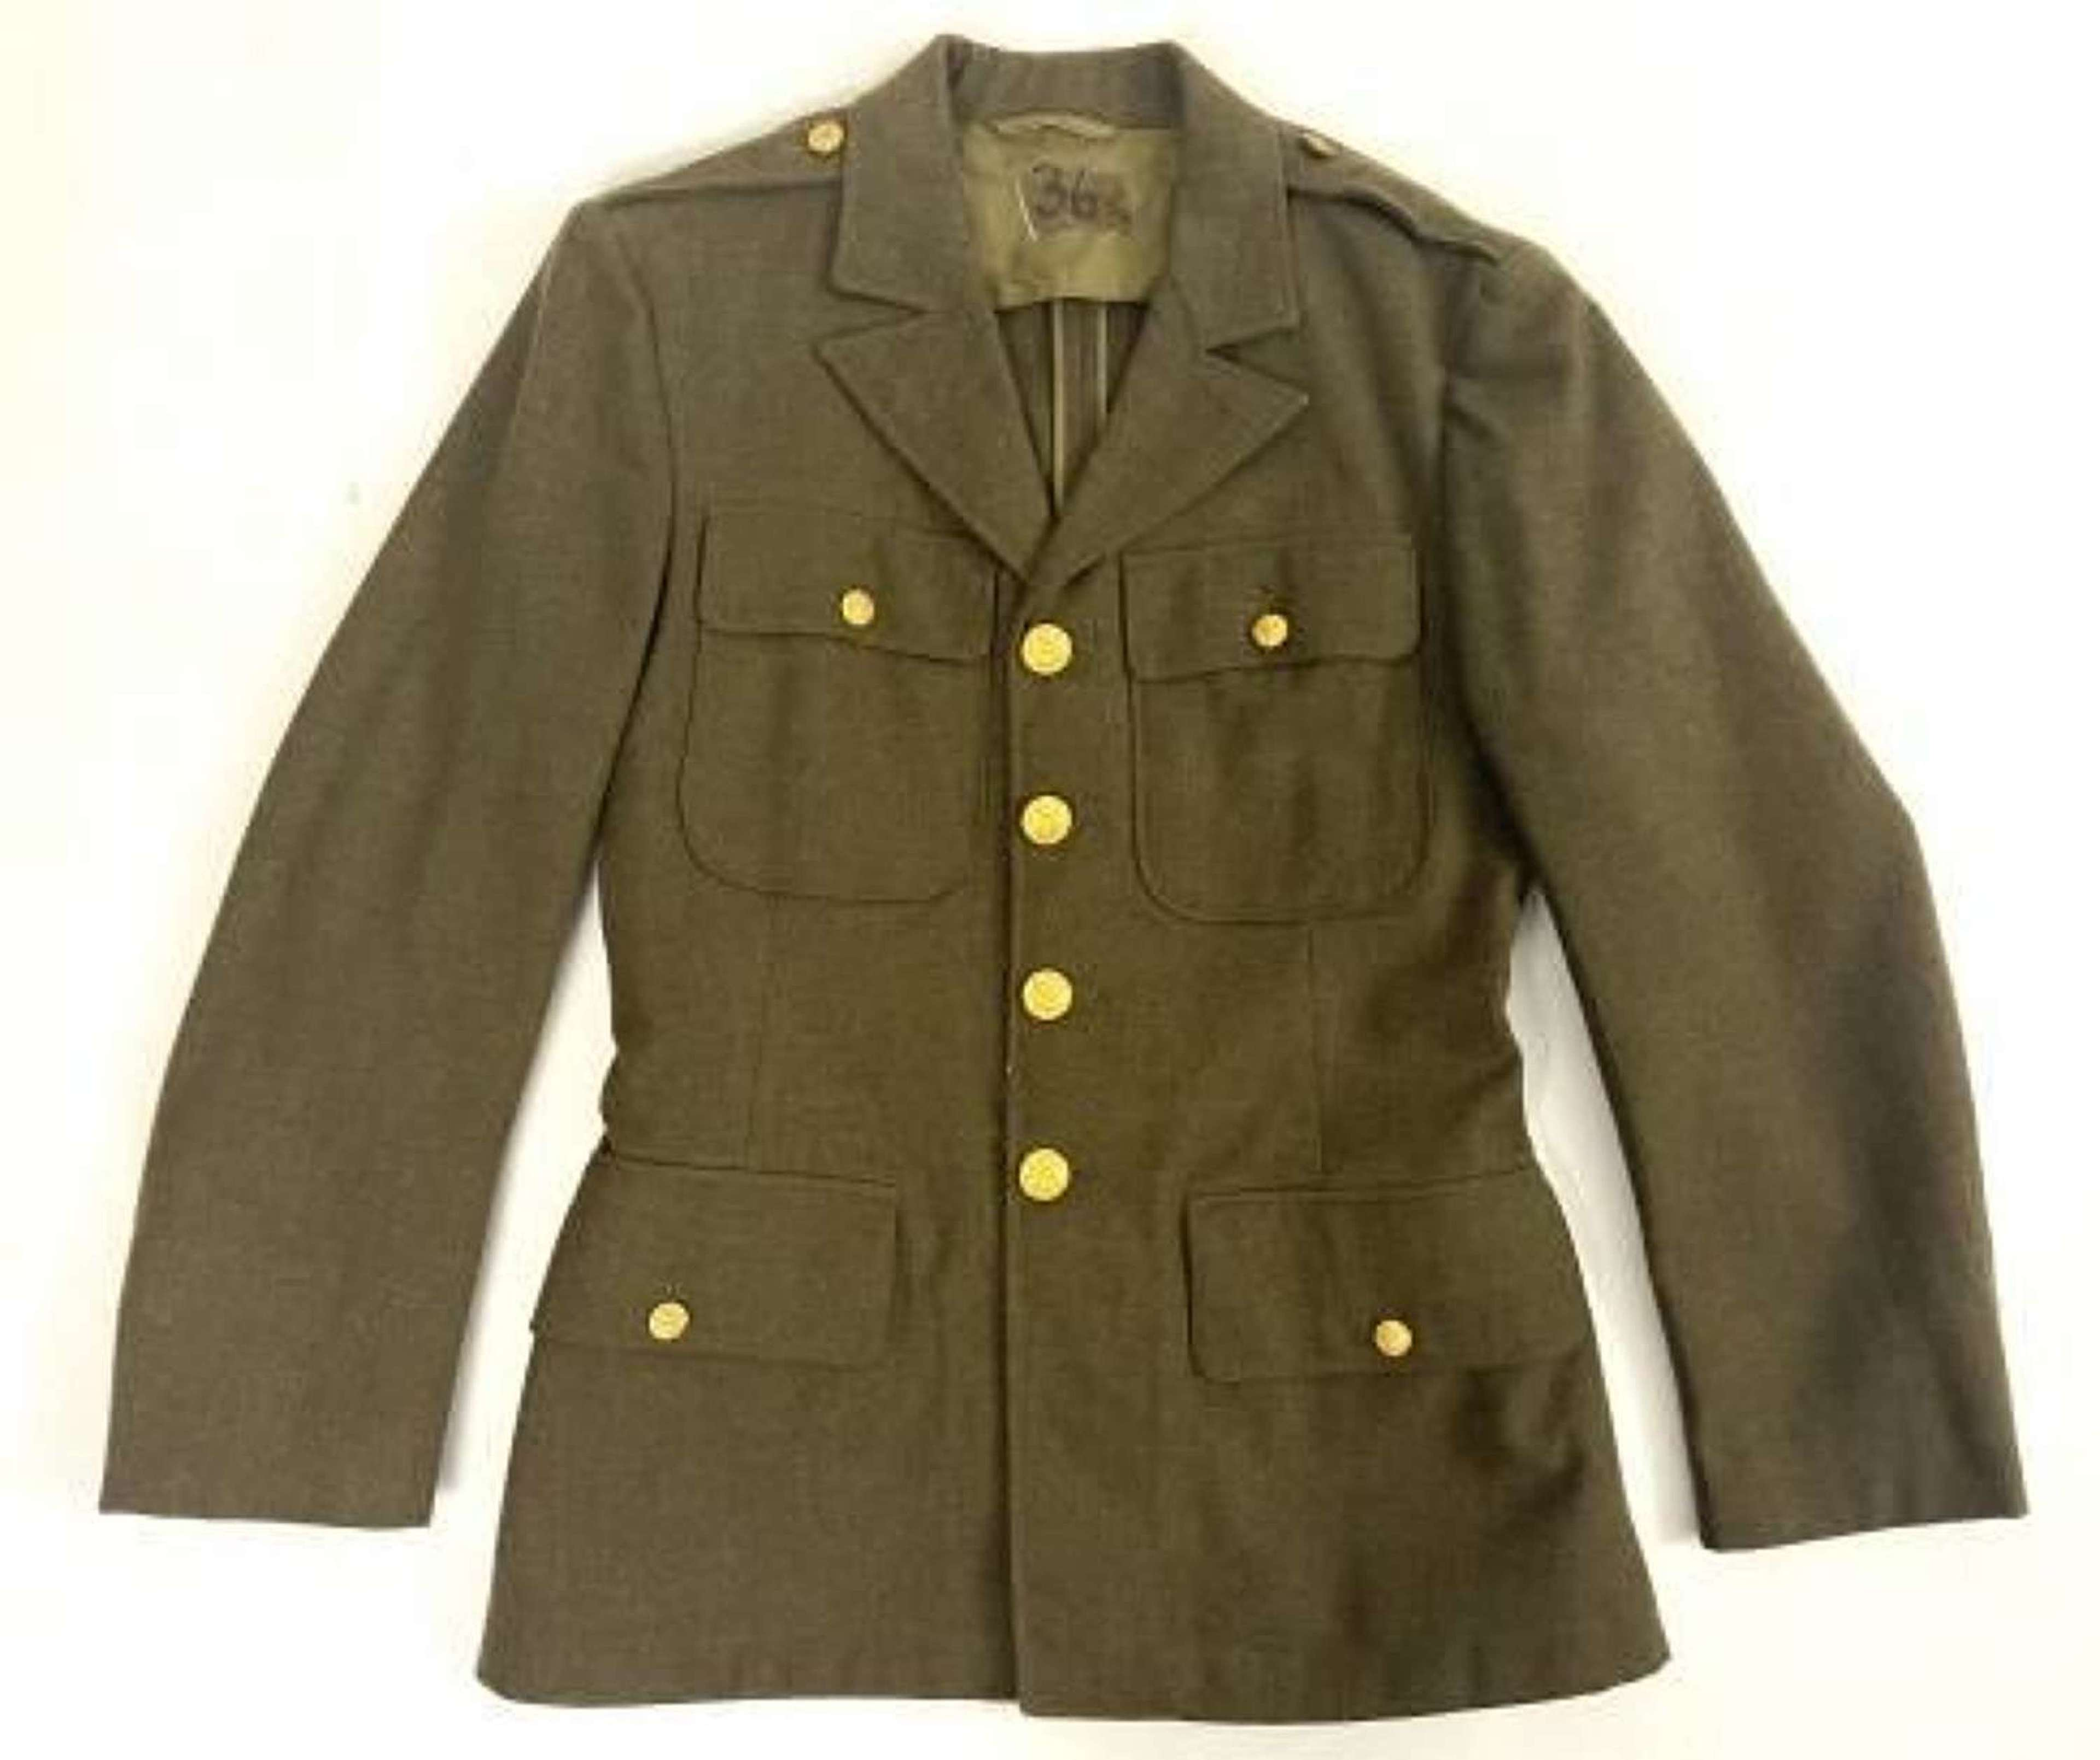 Original 1940 Dated US Enlisted Men's Tunic - Size 36